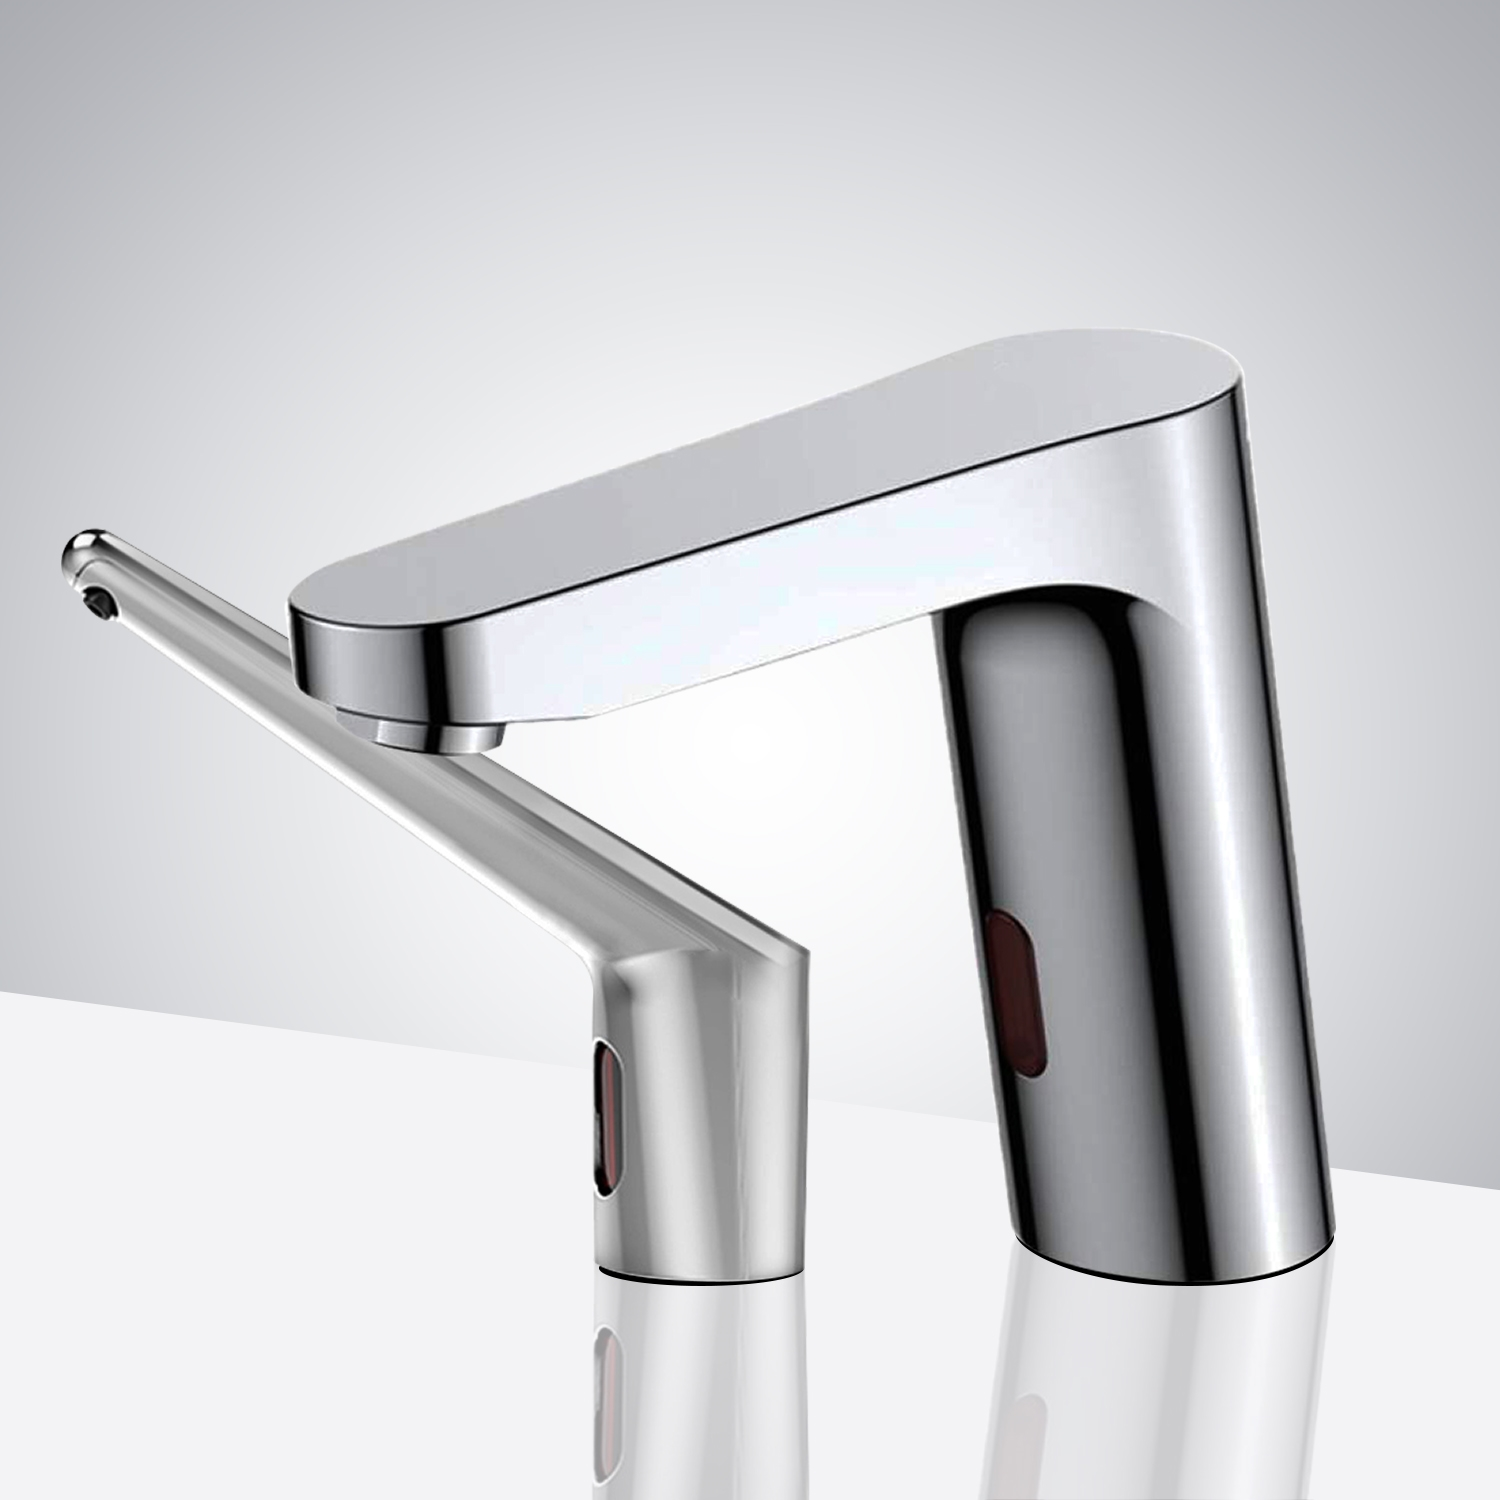 Fontana Bavaria Motion Sensor Faucet & Automatic Soap Dispenser for Restrooms